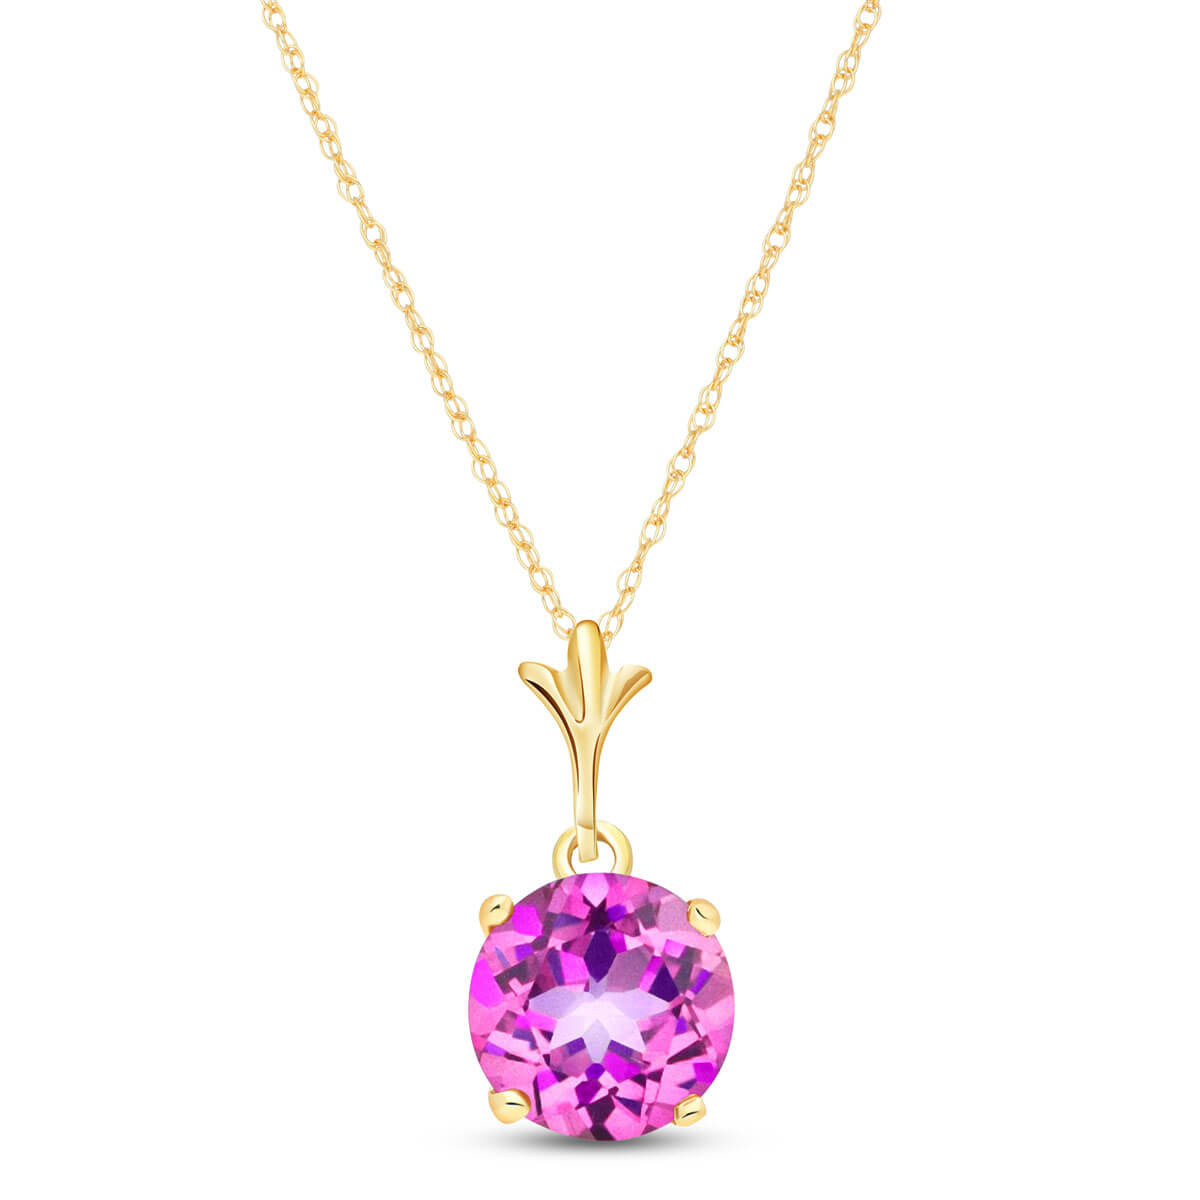 Pink Topaz Drop Pendant Necklace 1.15 ct in 9ct Gold